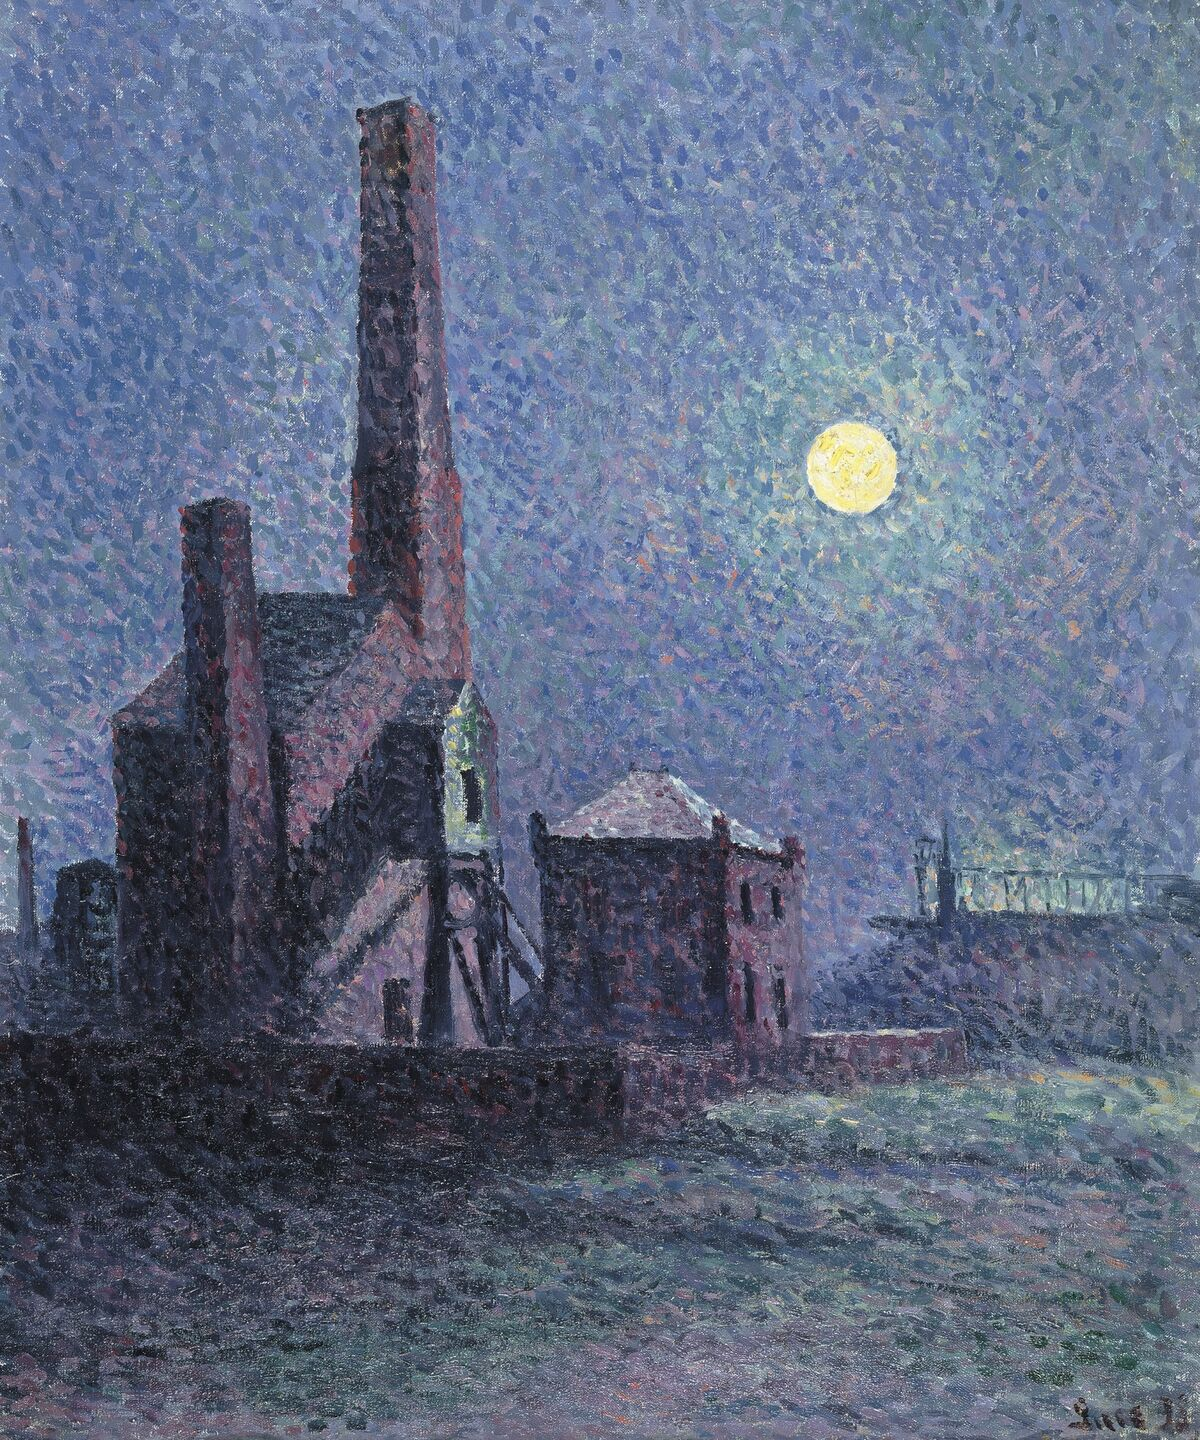 Maximilien Luce, Factory in the Moonlight, 1898. Courtesy of the Art Gallery of Ontario.